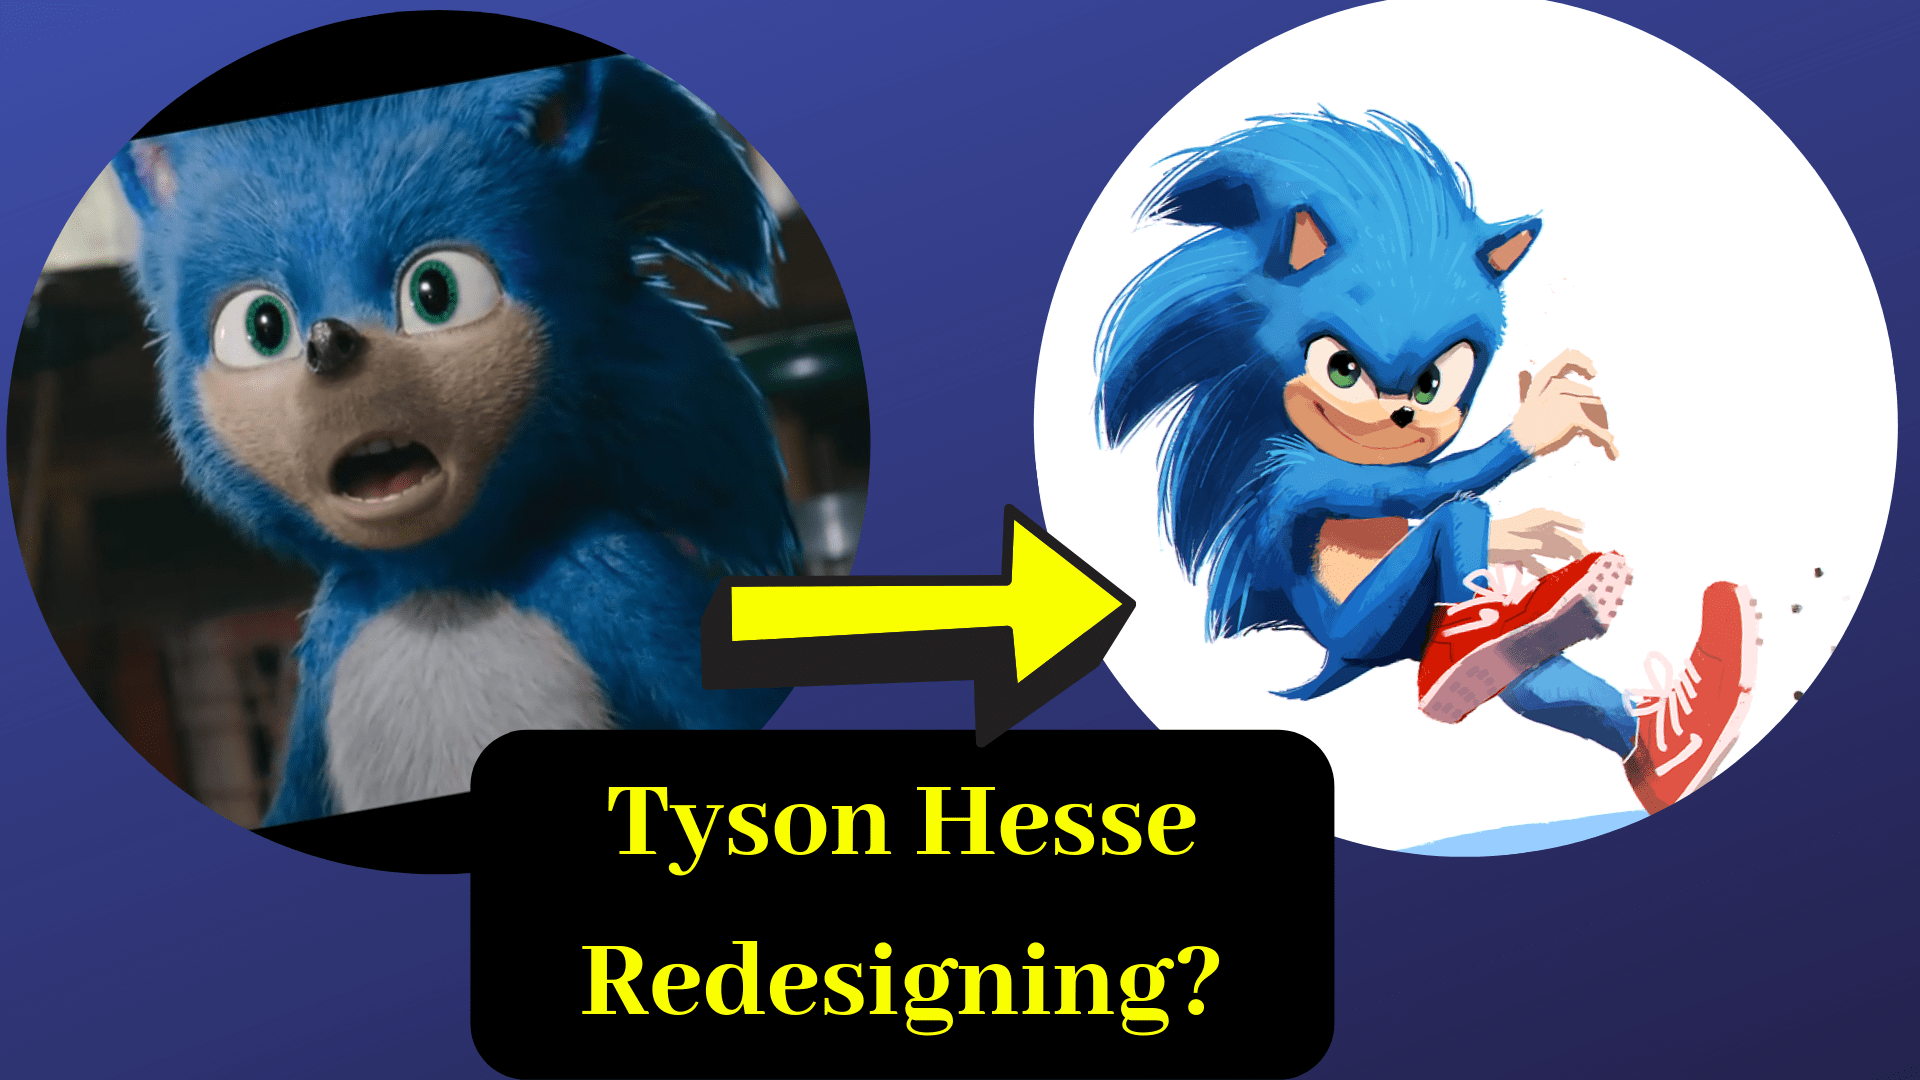 Comic Artist Tyson Hesse Claims To Have Worked On The Redesign For